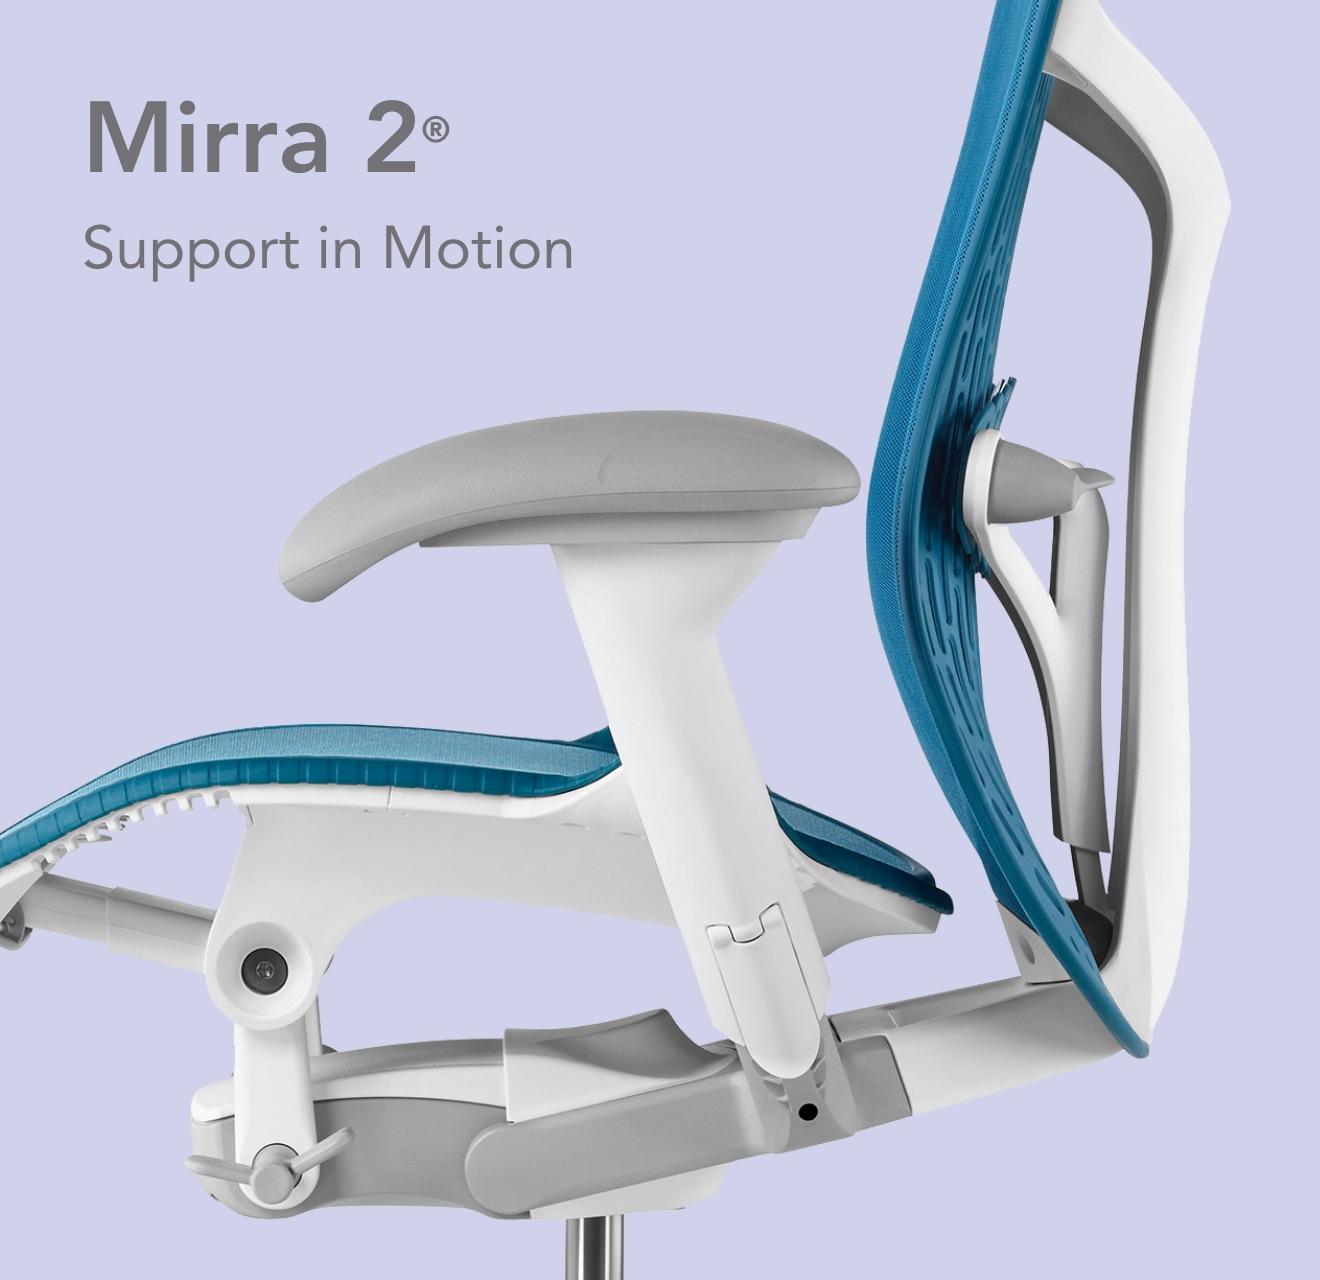 Mirra 2 Chair's Stylishly Designed Dynamic Support